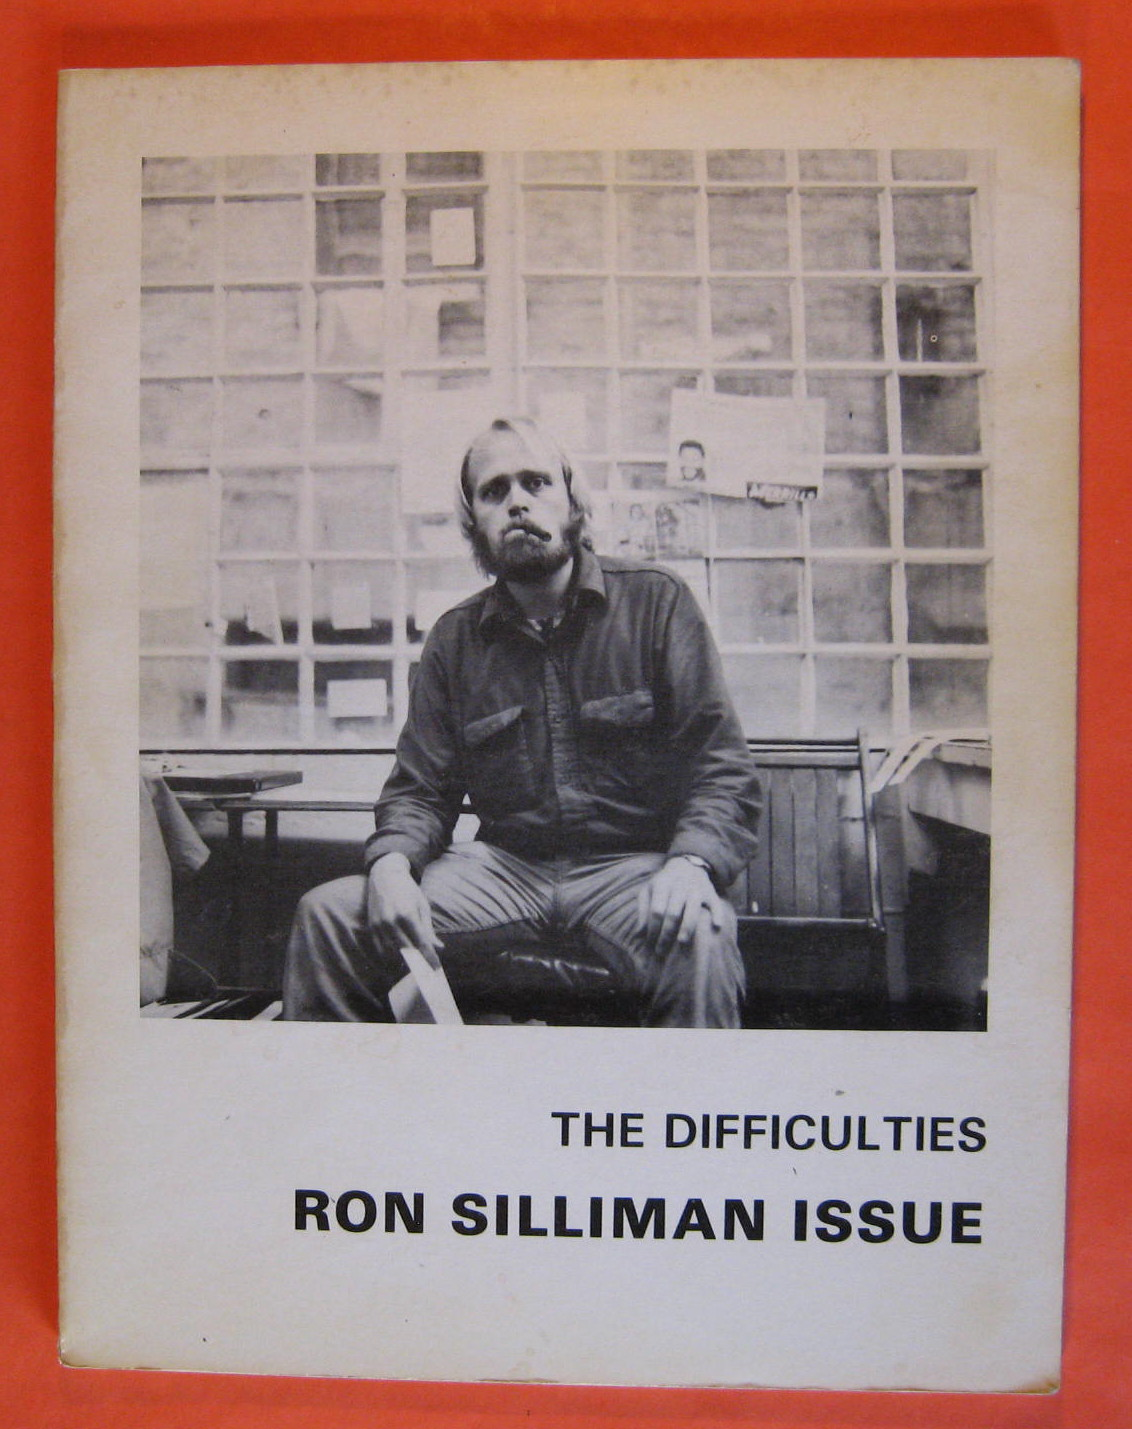 Image for Difficulties  Vol 2 #2 Ron Silliman Issue, The